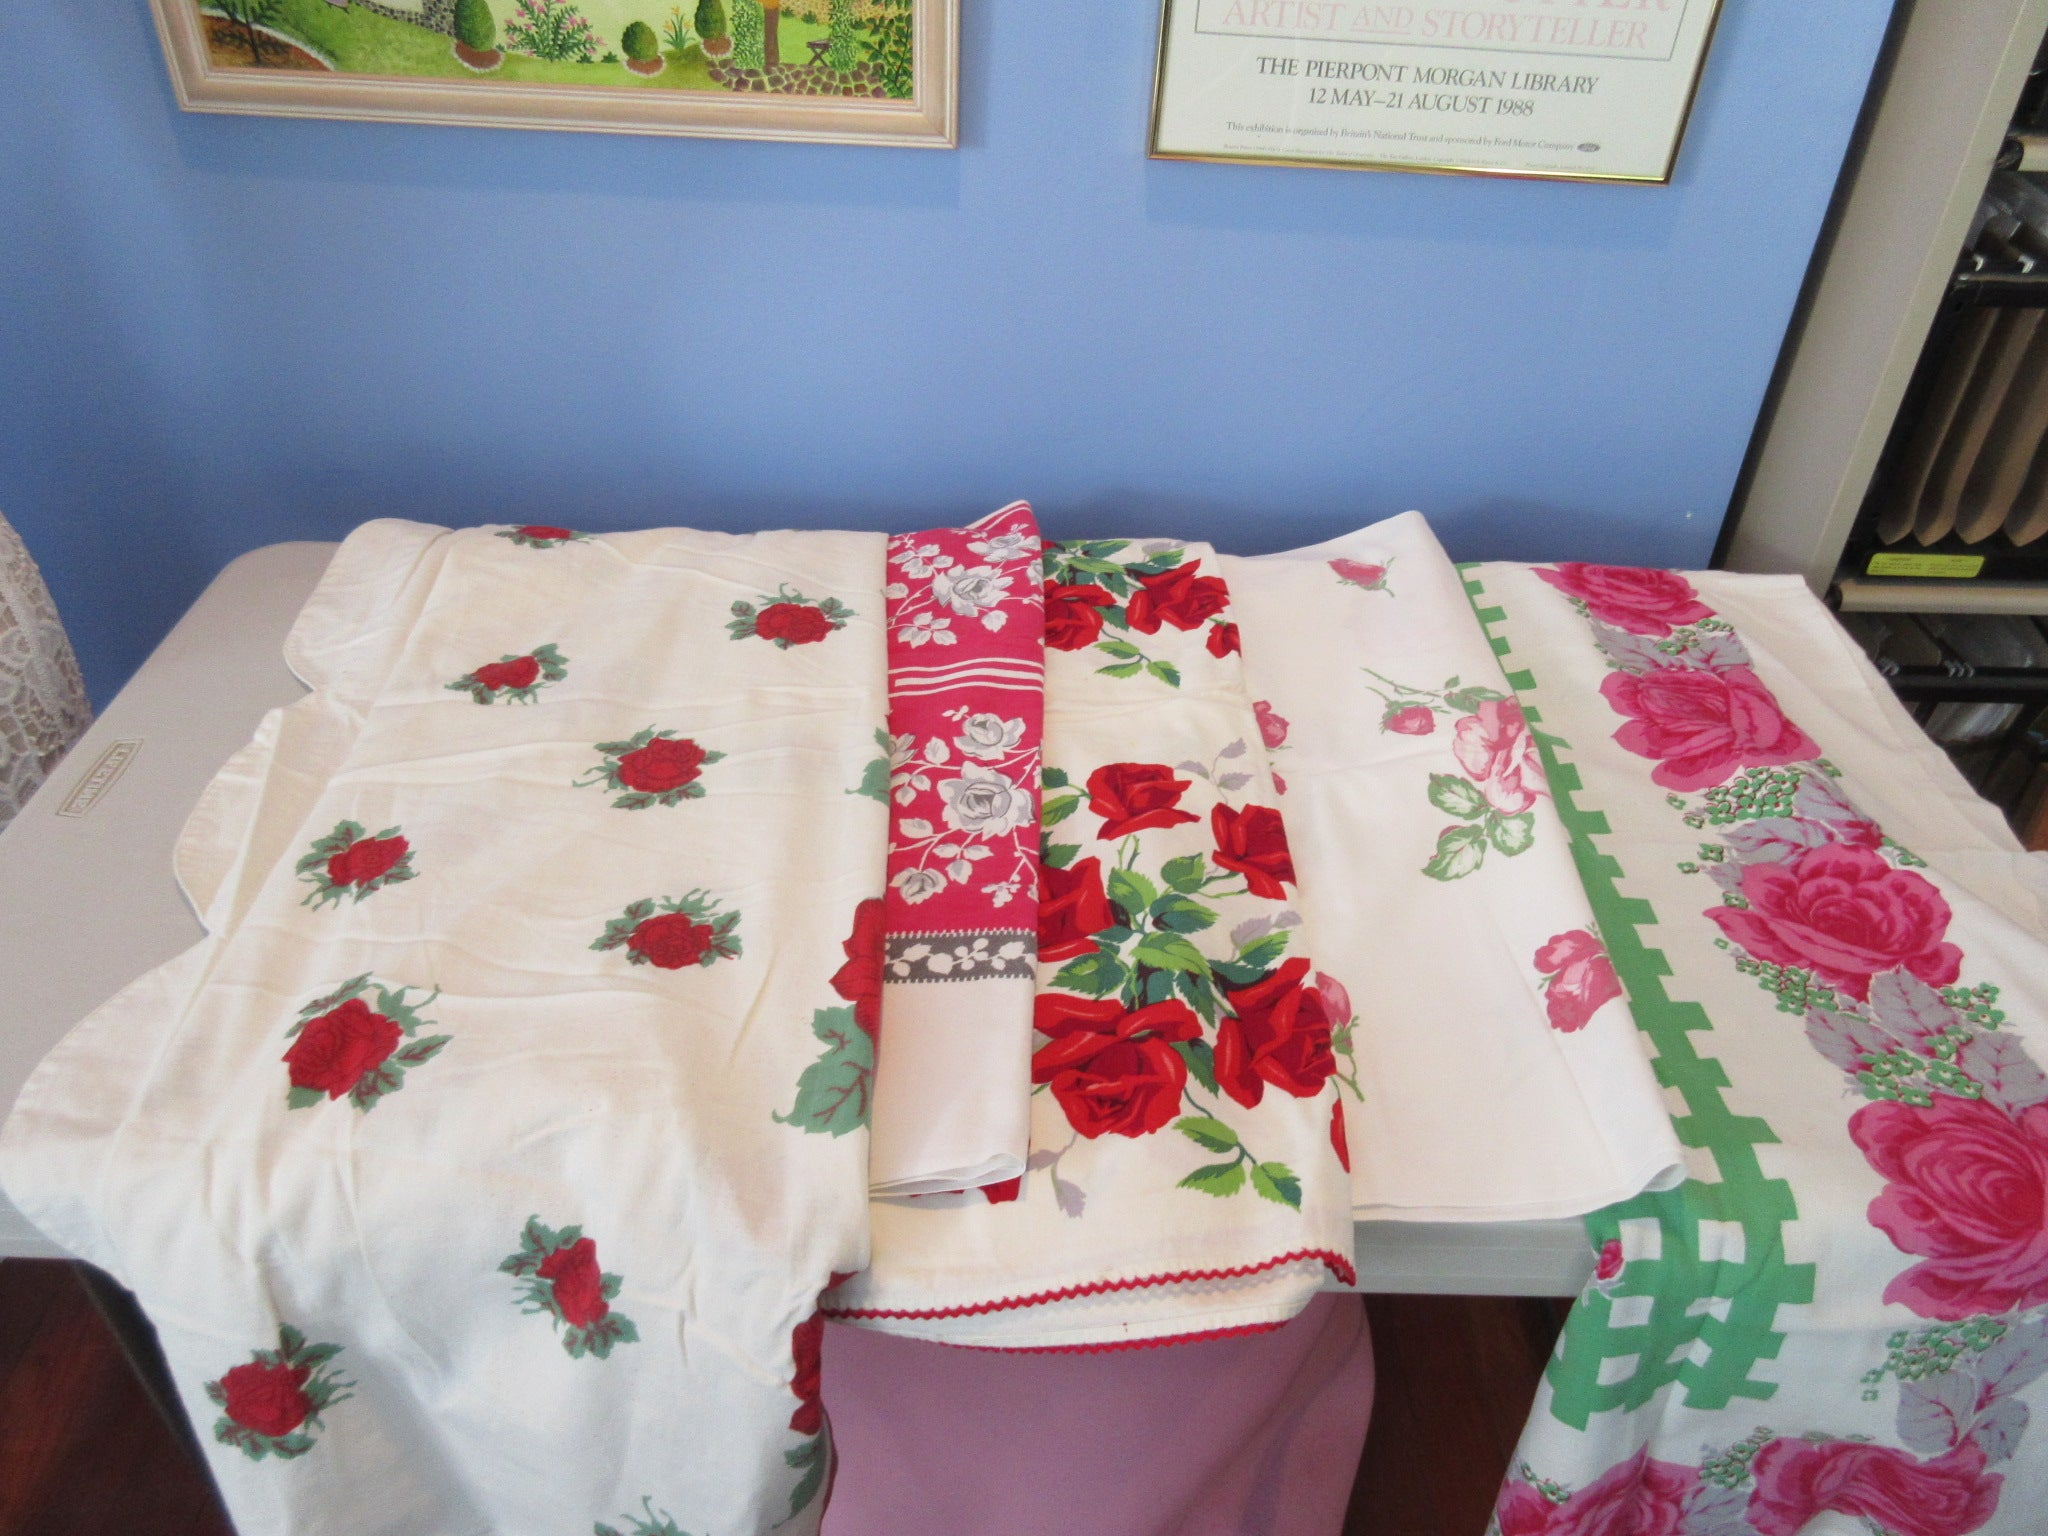 Red Pink Roses Cutter Lot G a1275 i6657 a2289 a2297 Vintage Printed Tablecloth